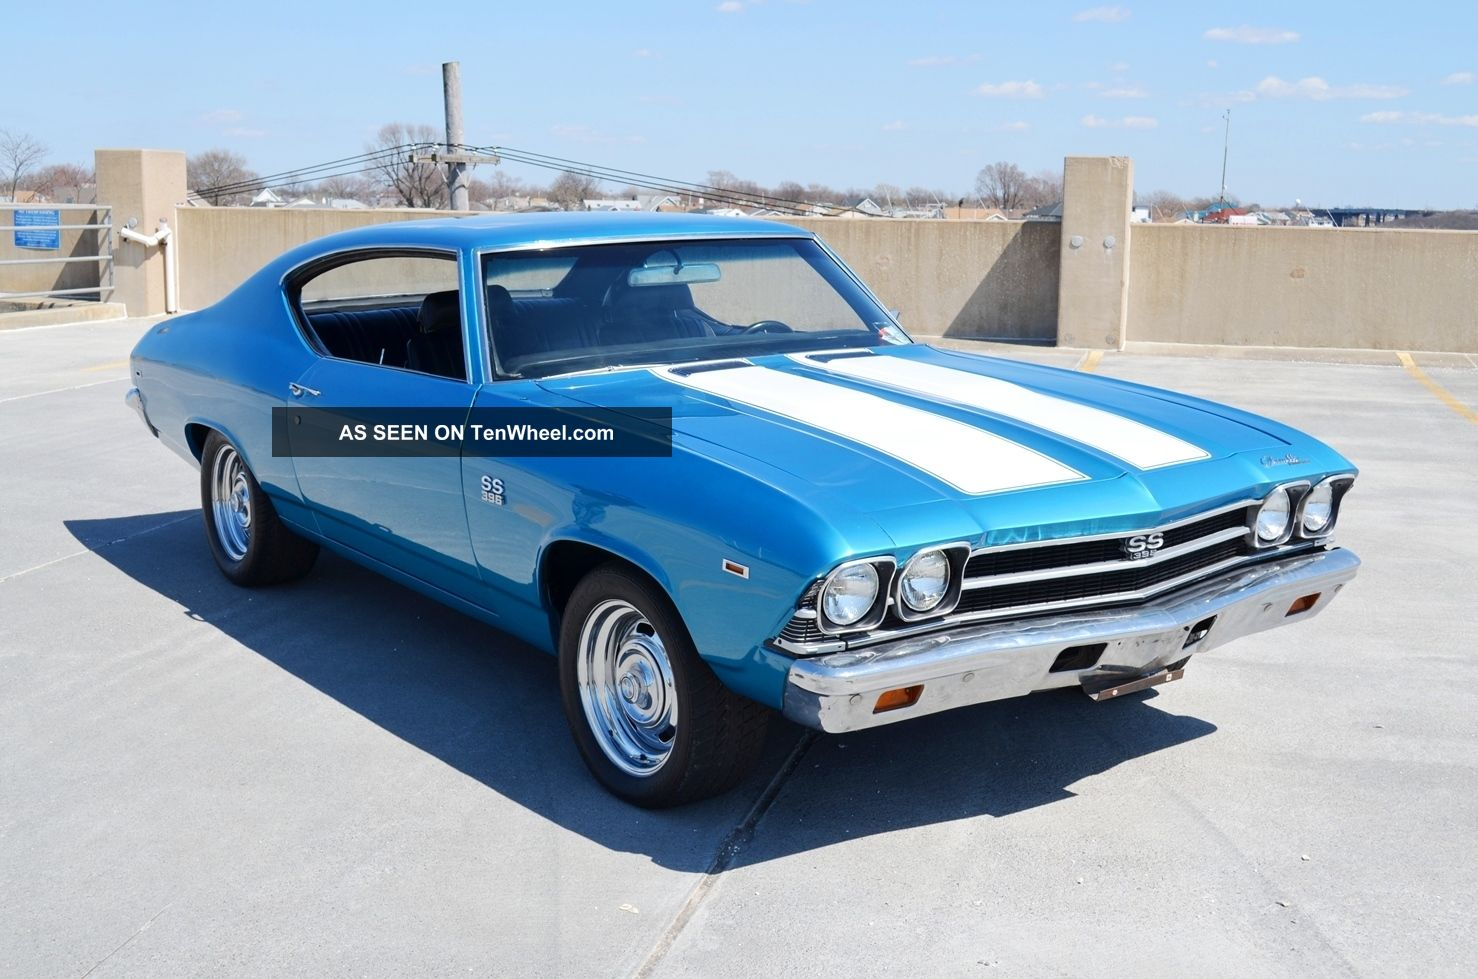 1969 Chevelle Ss396 4 Speed Video